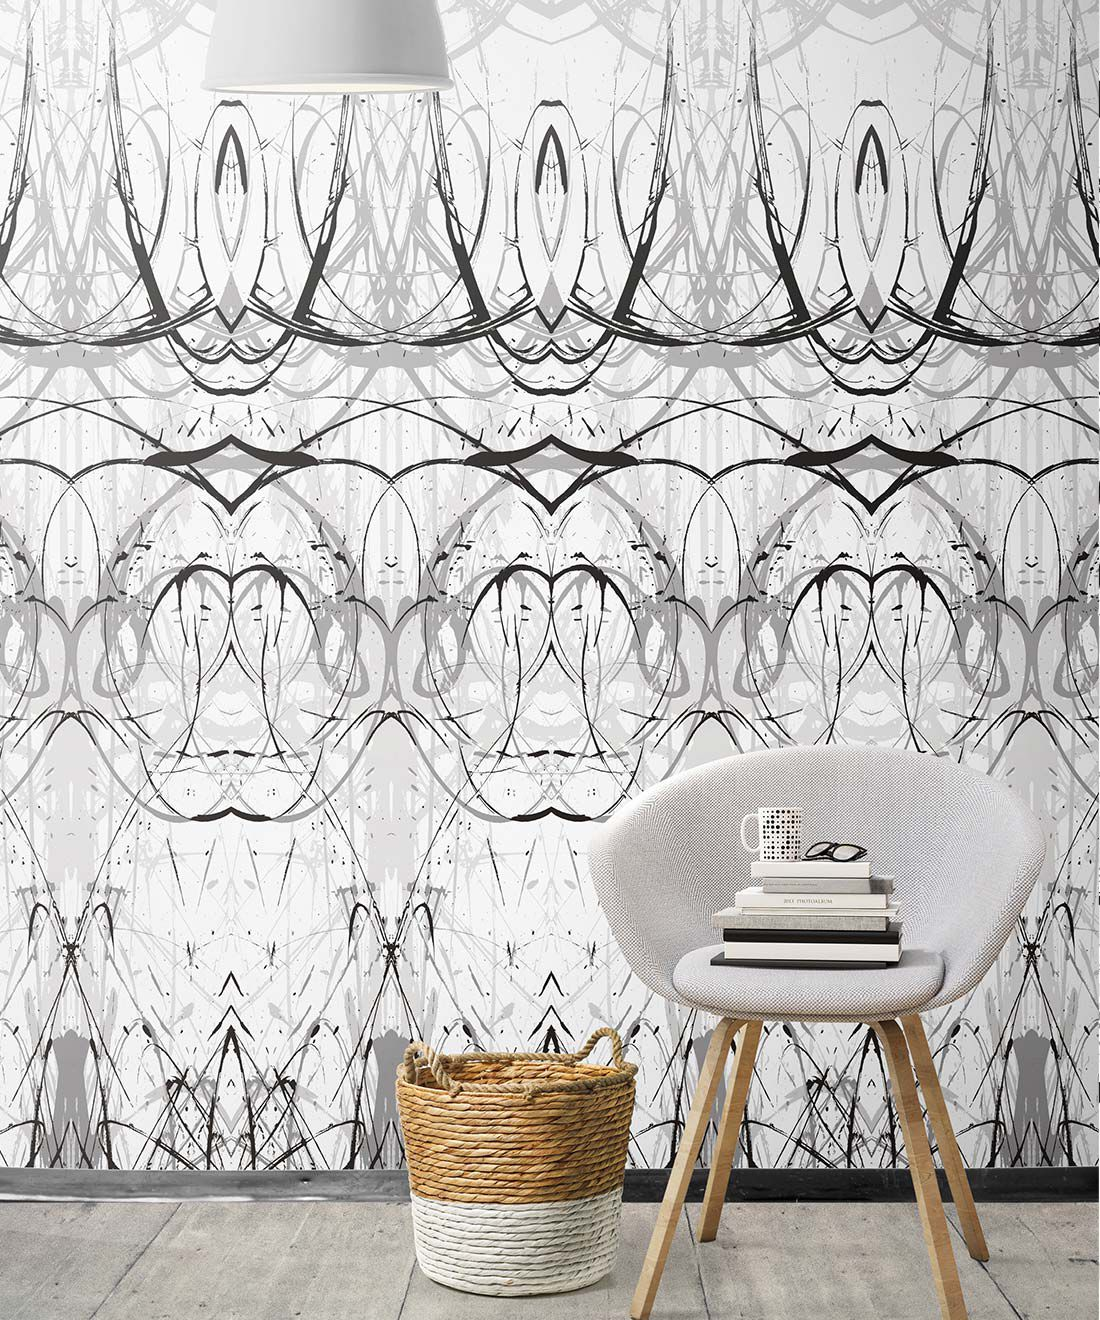 Penthu Wallpaper by Simcox • Color Black & White • Contemporary Wallpaper • insitu